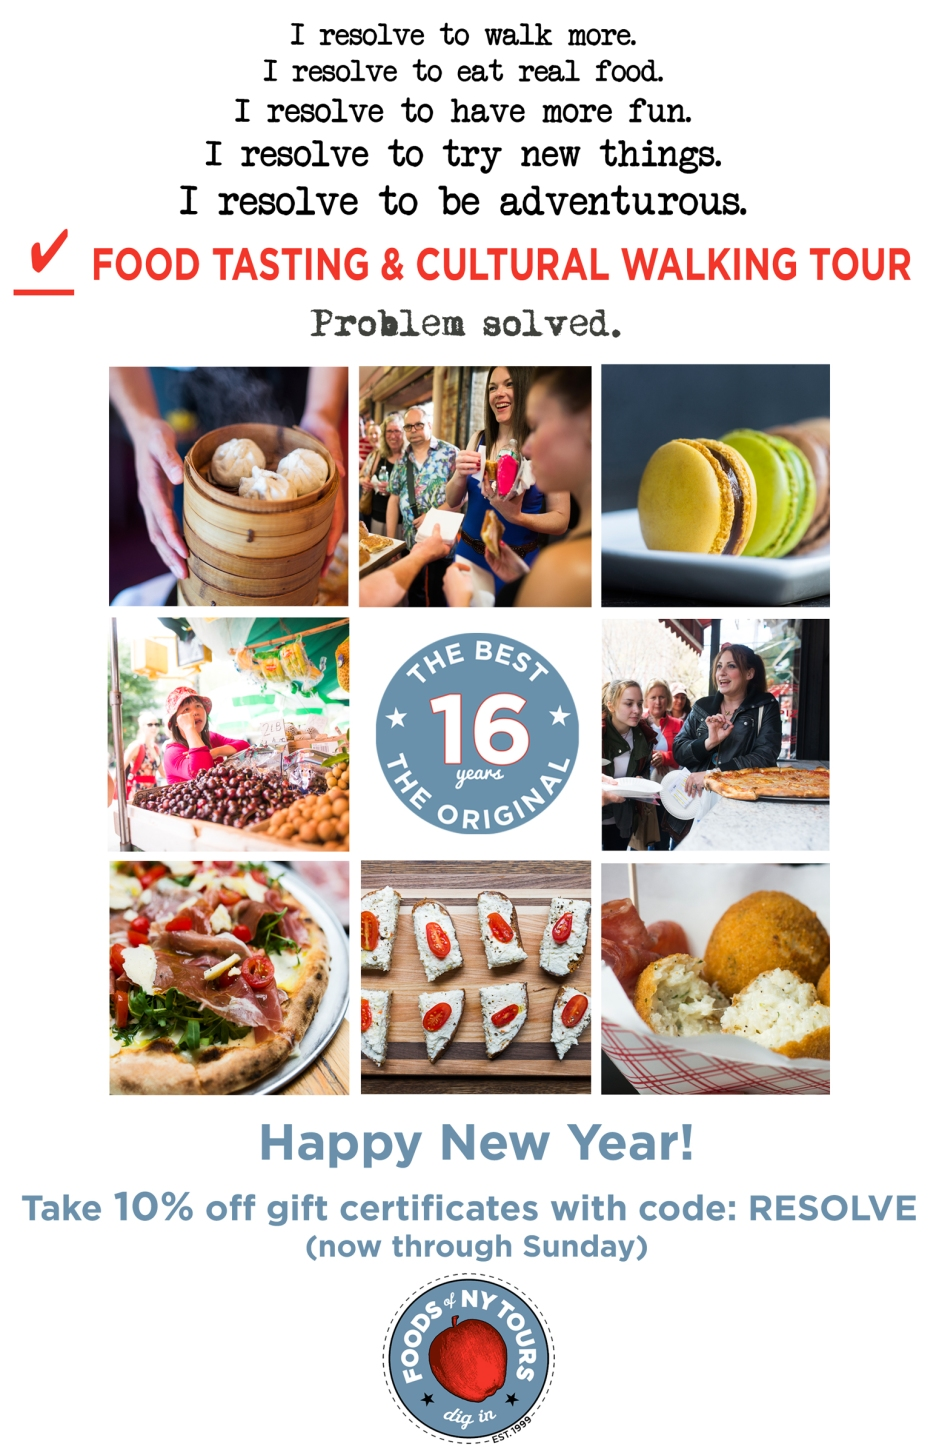 Foods of NY Tours- New Year Ad #3